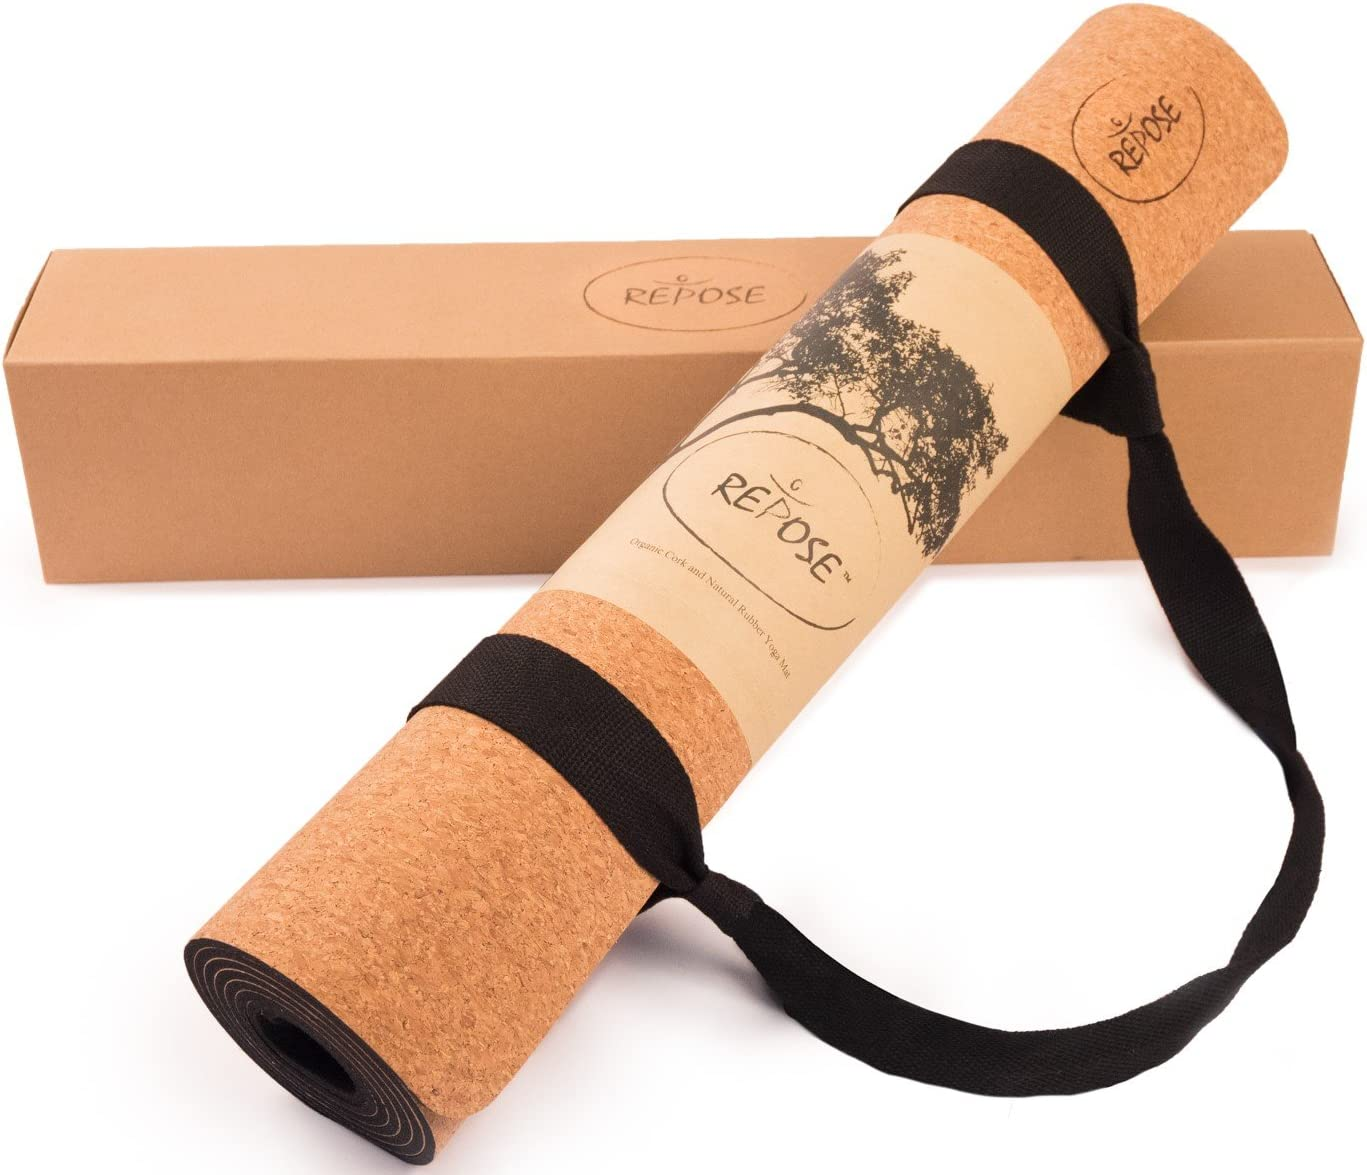 Repose Eco-Friendly Yoga mat, Organic Cork & Natural Rubber Mat for Earth and Health – 72